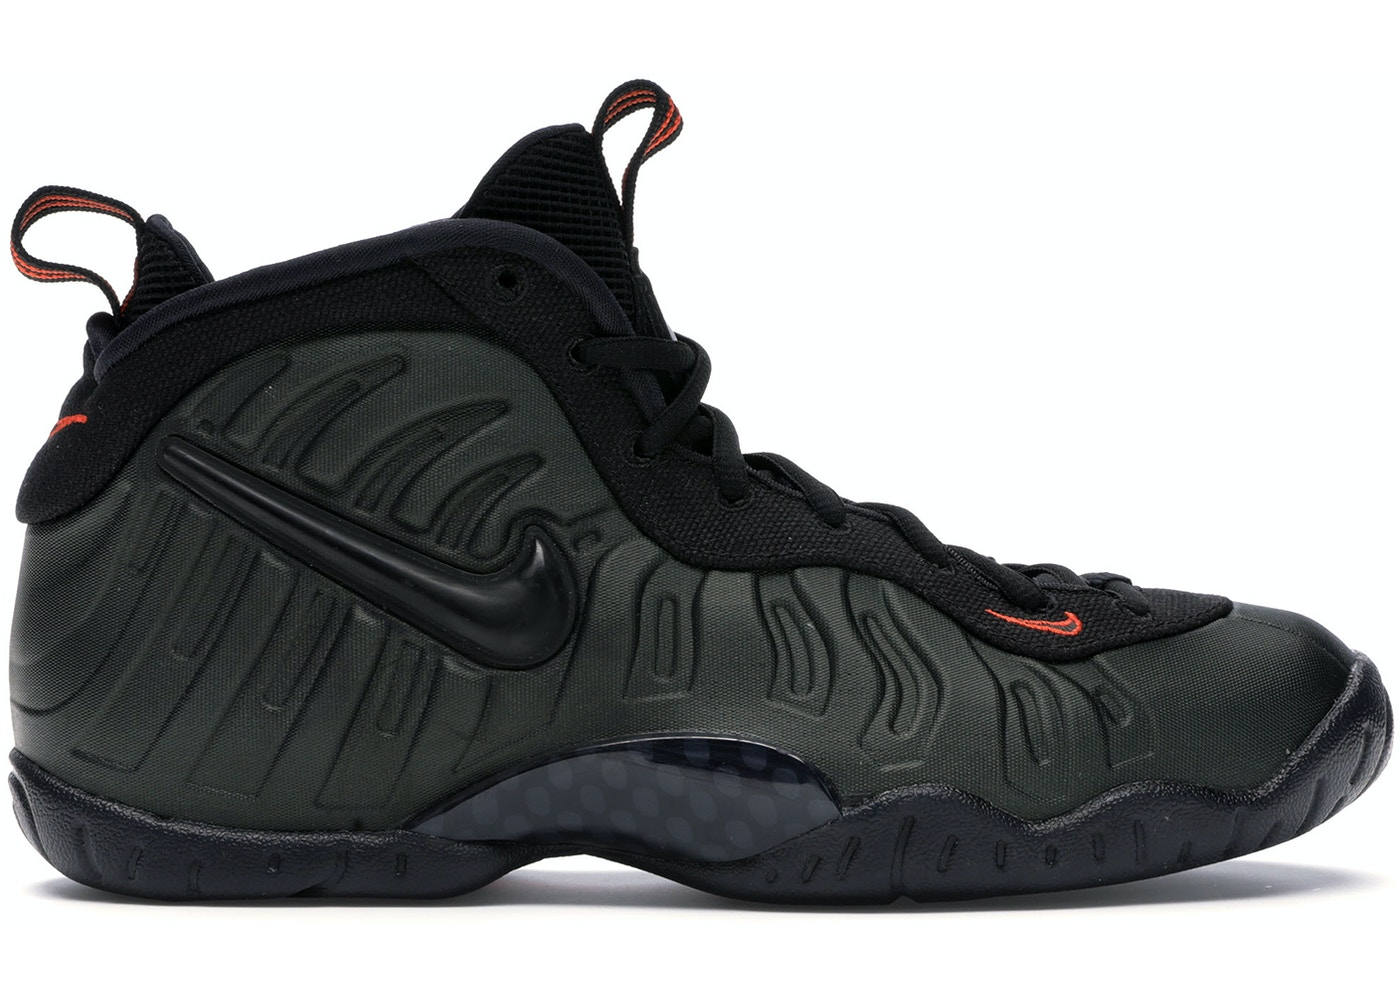 half off a1bde 8a56a Buy Nike Foamposite Shoes & Deadstock Sneakers